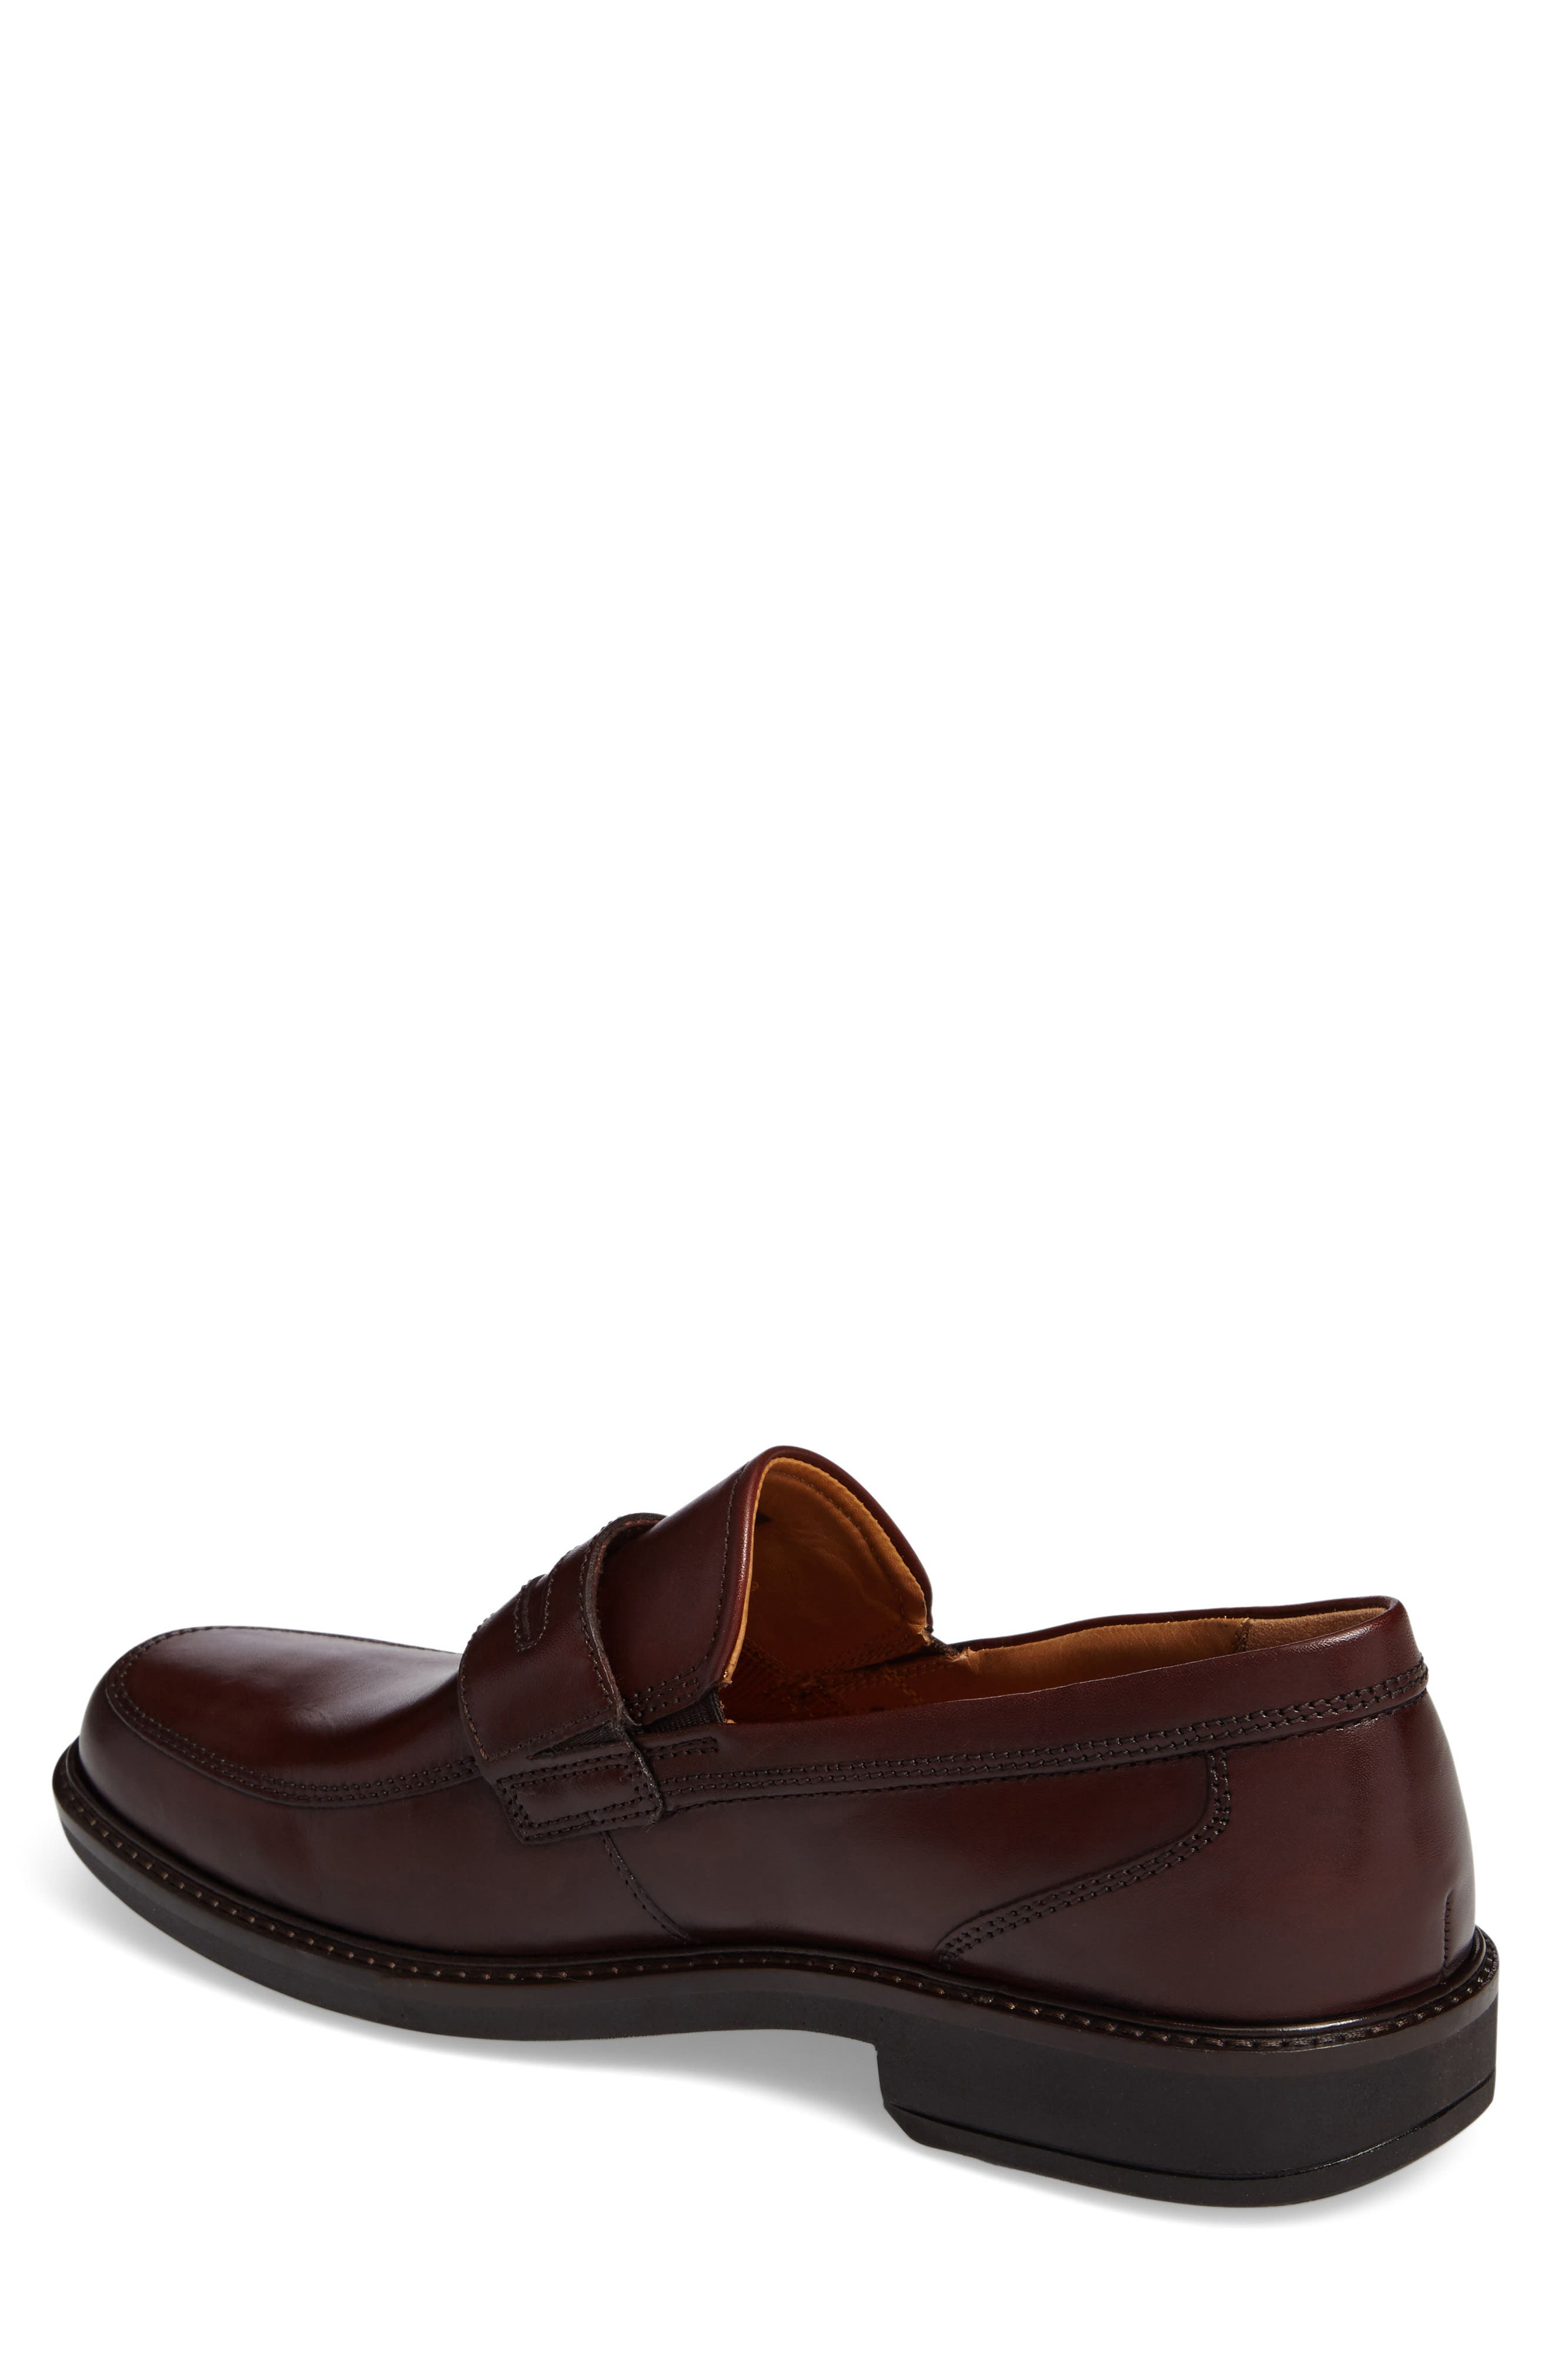 Holton Penny Loafer,                             Alternate thumbnail 4, color,